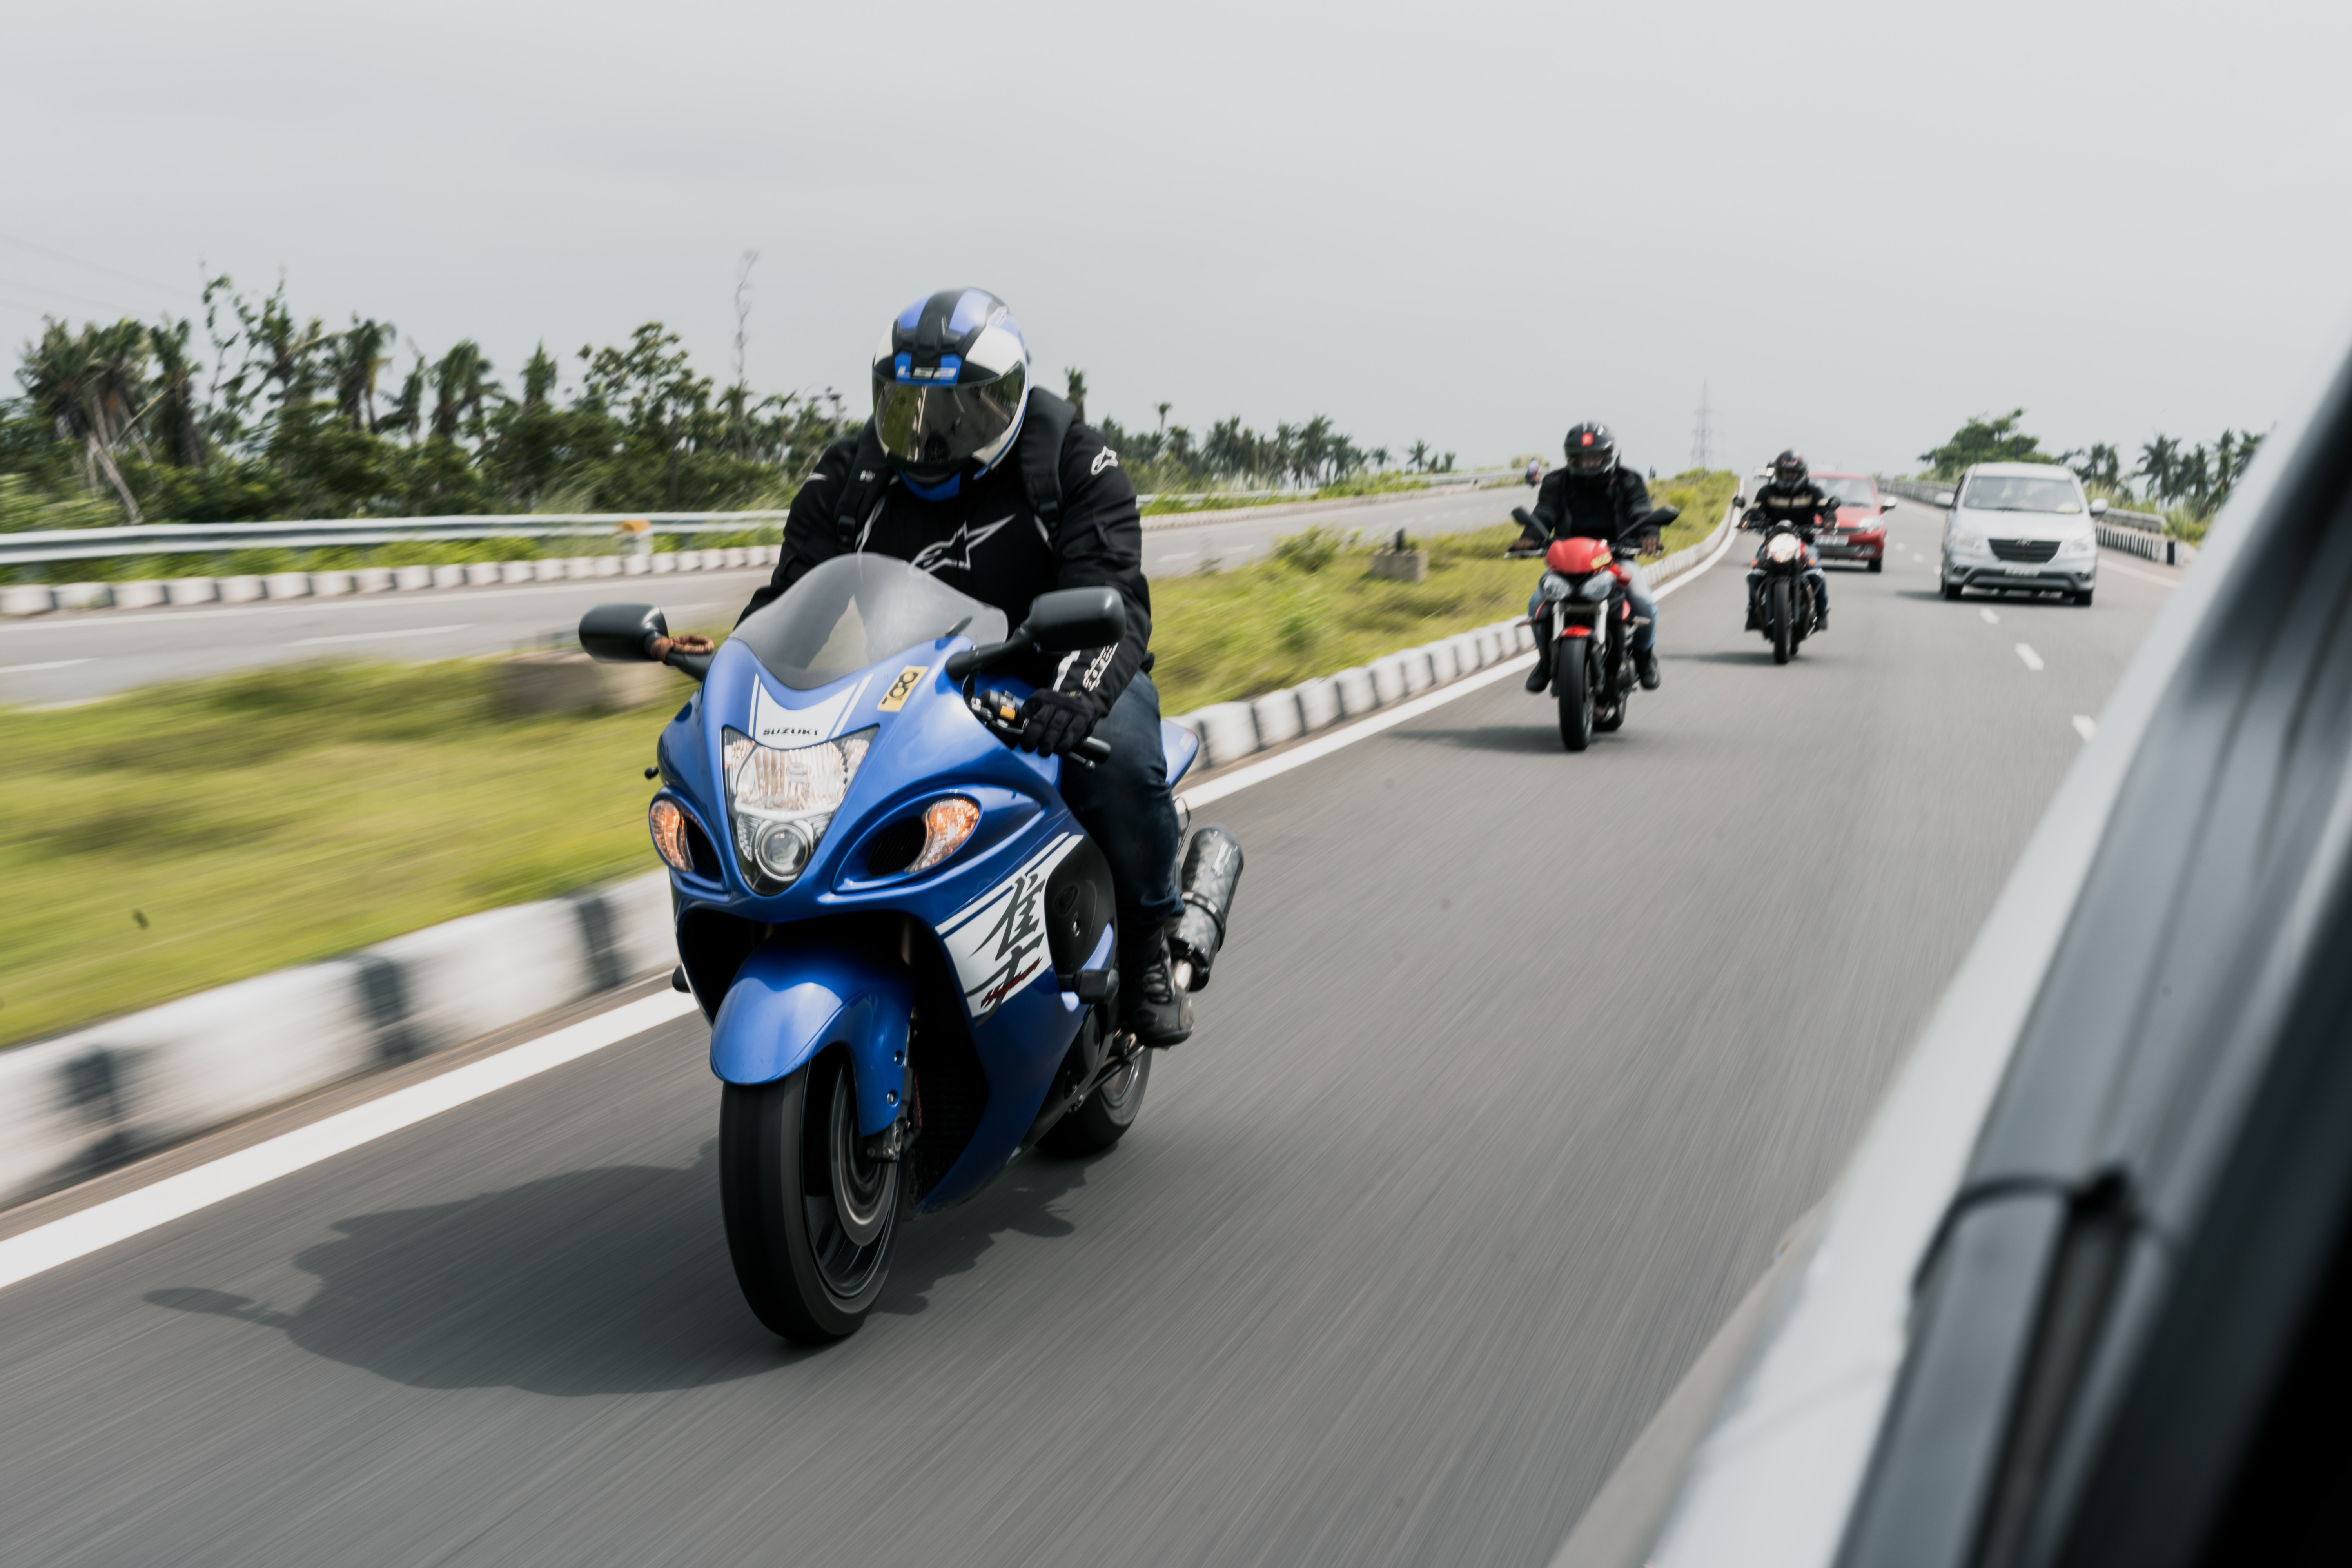 Fleets be Forewarned: More Motorcyclists on Roads